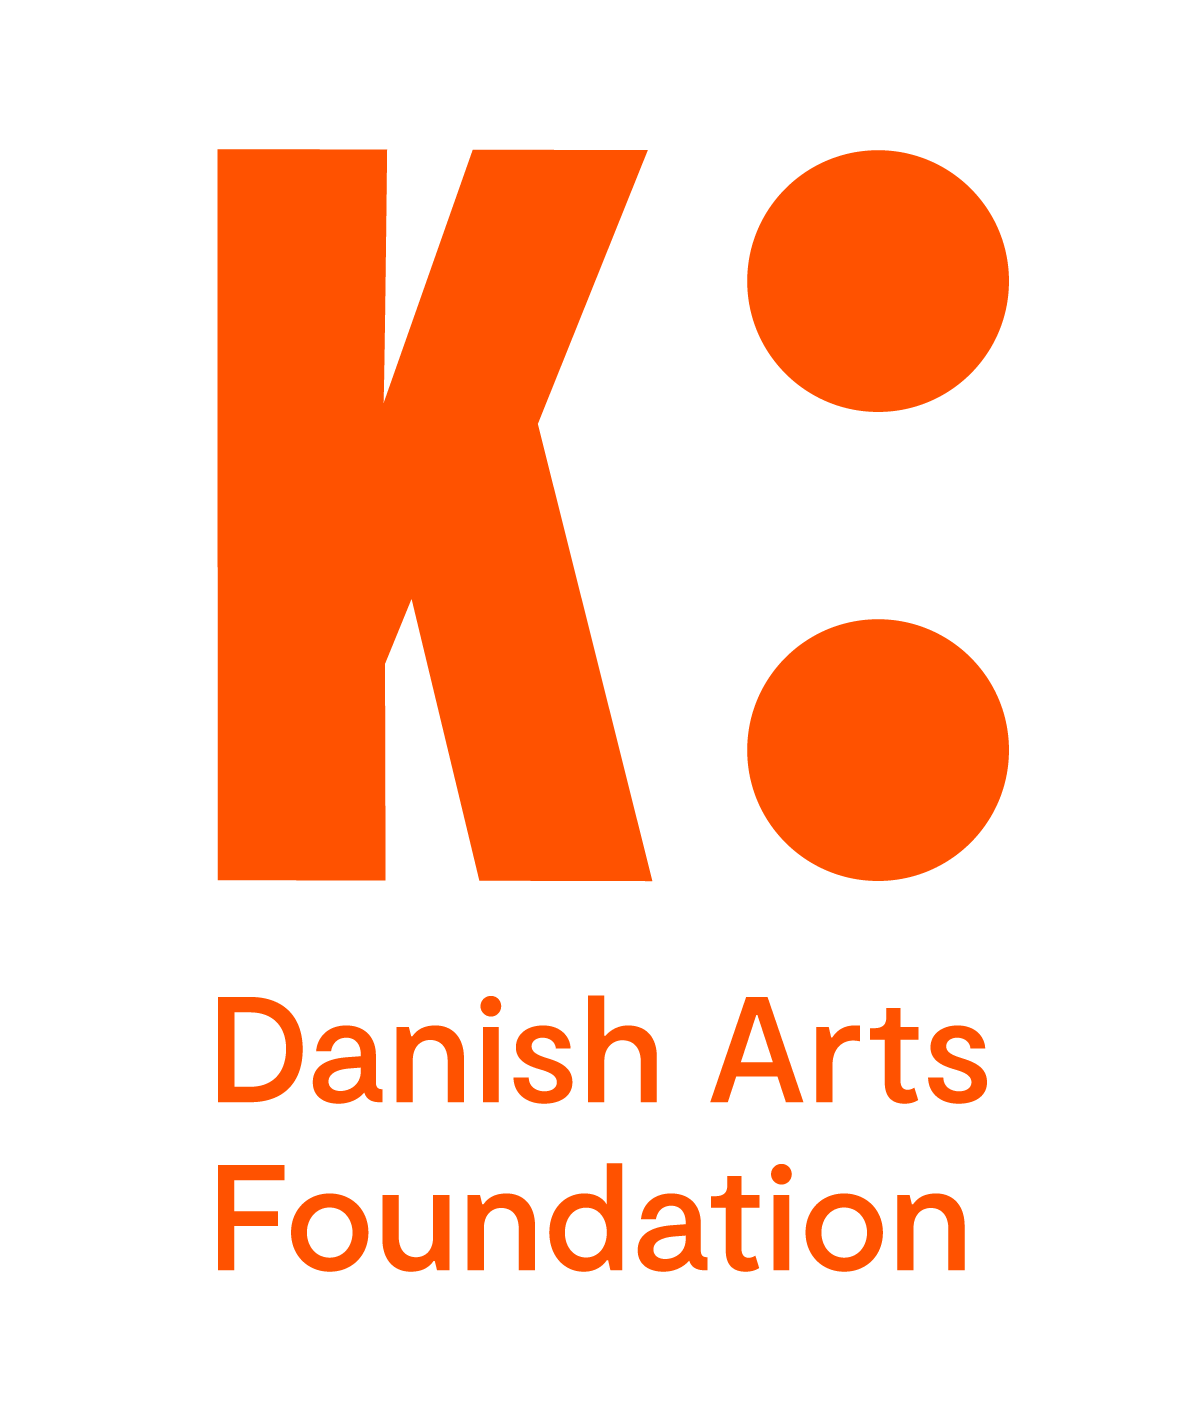 Thanks to Danish Arts Foundation for supporting KP20 & SPRING20